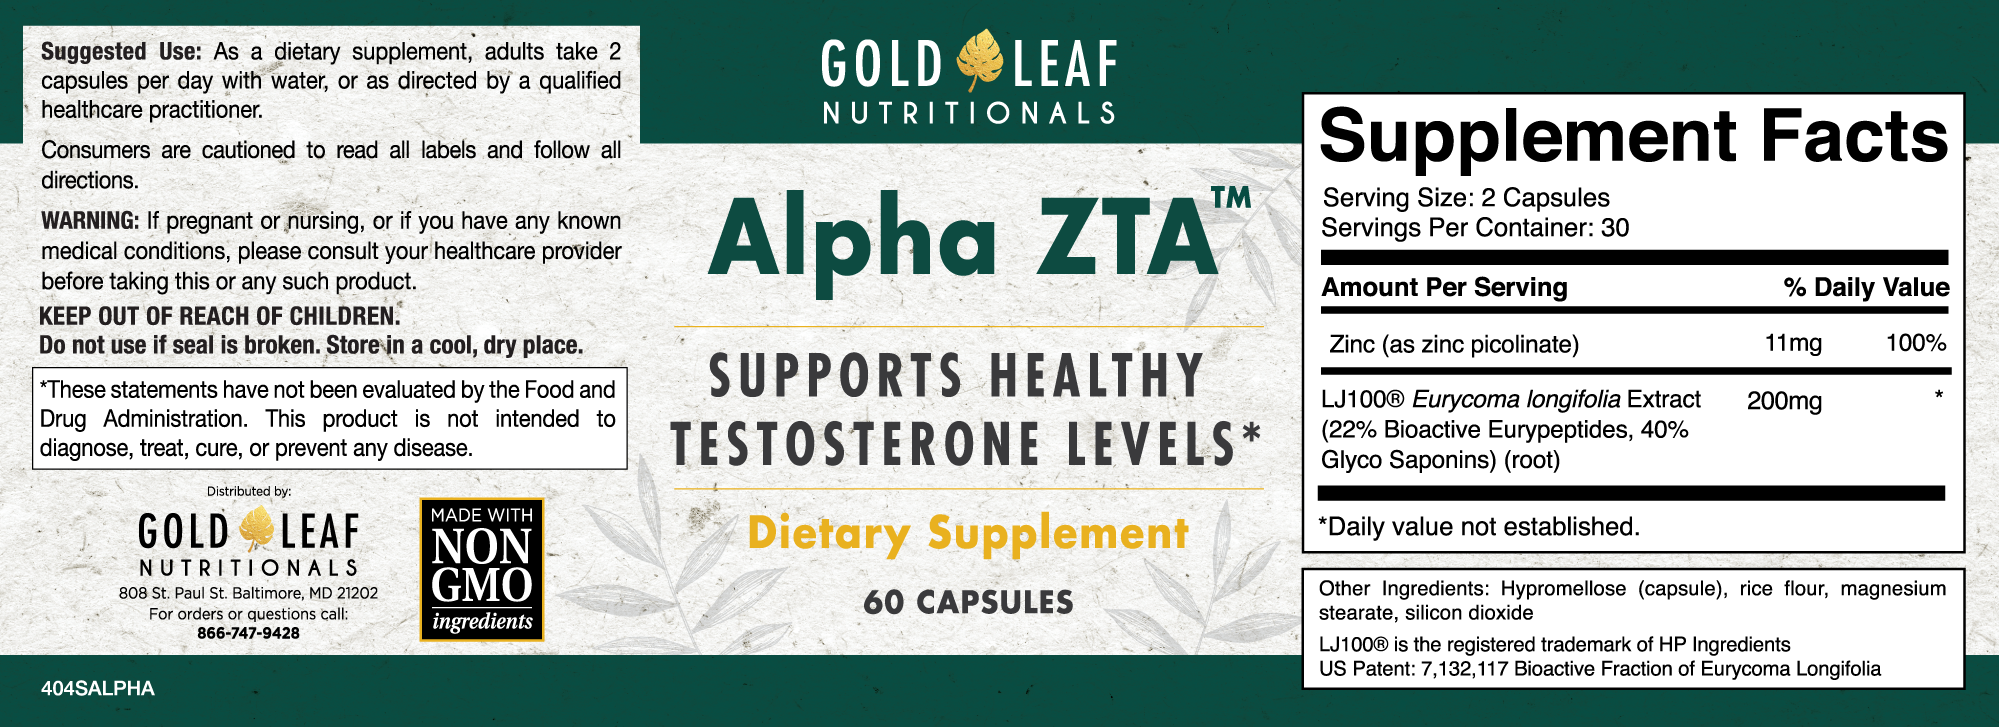 Alpha Zta Gold Leaf Nutritionals Iphone Wallpapers Free Beautiful  HD Wallpapers, Images Over 1000+ [getprihce.gq]